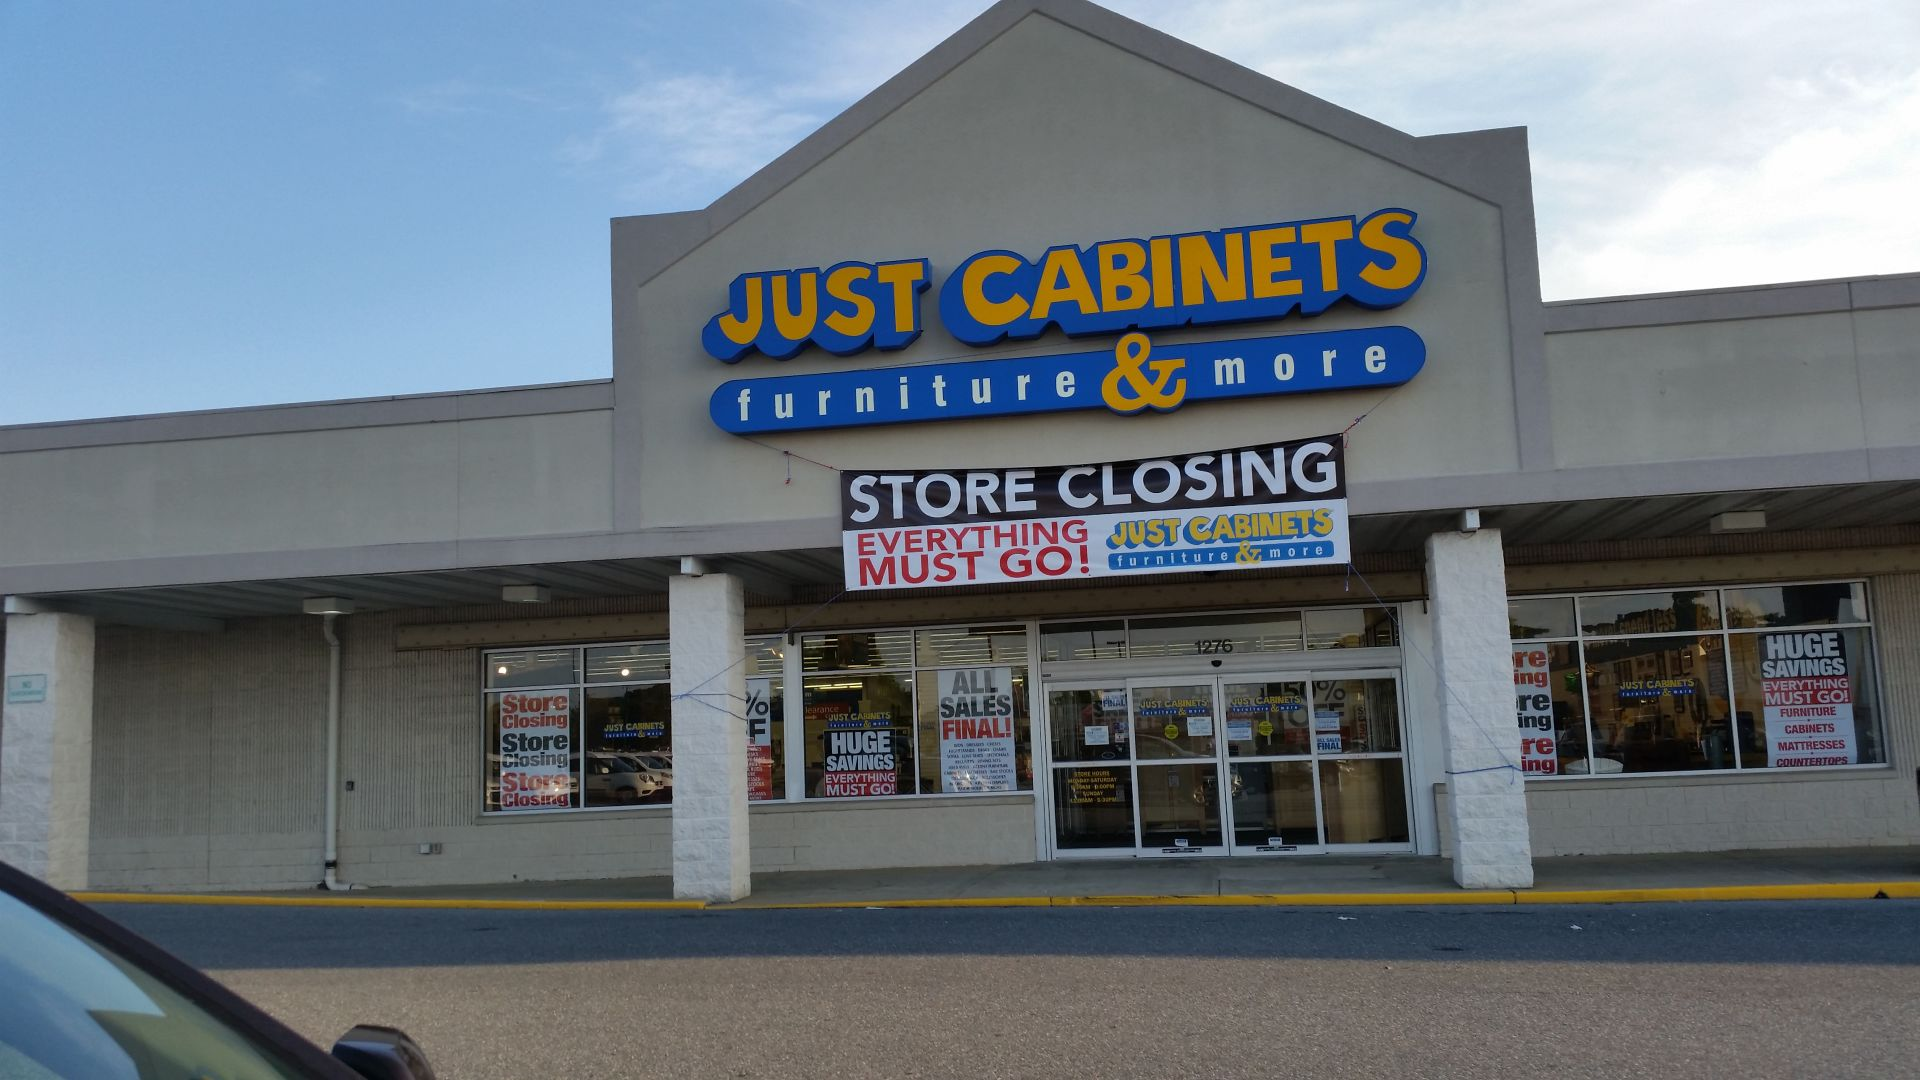 Just Cabinets To Close Golden Triangle Store After 8 Years In Business |  Local Business | Lancasteronline.com